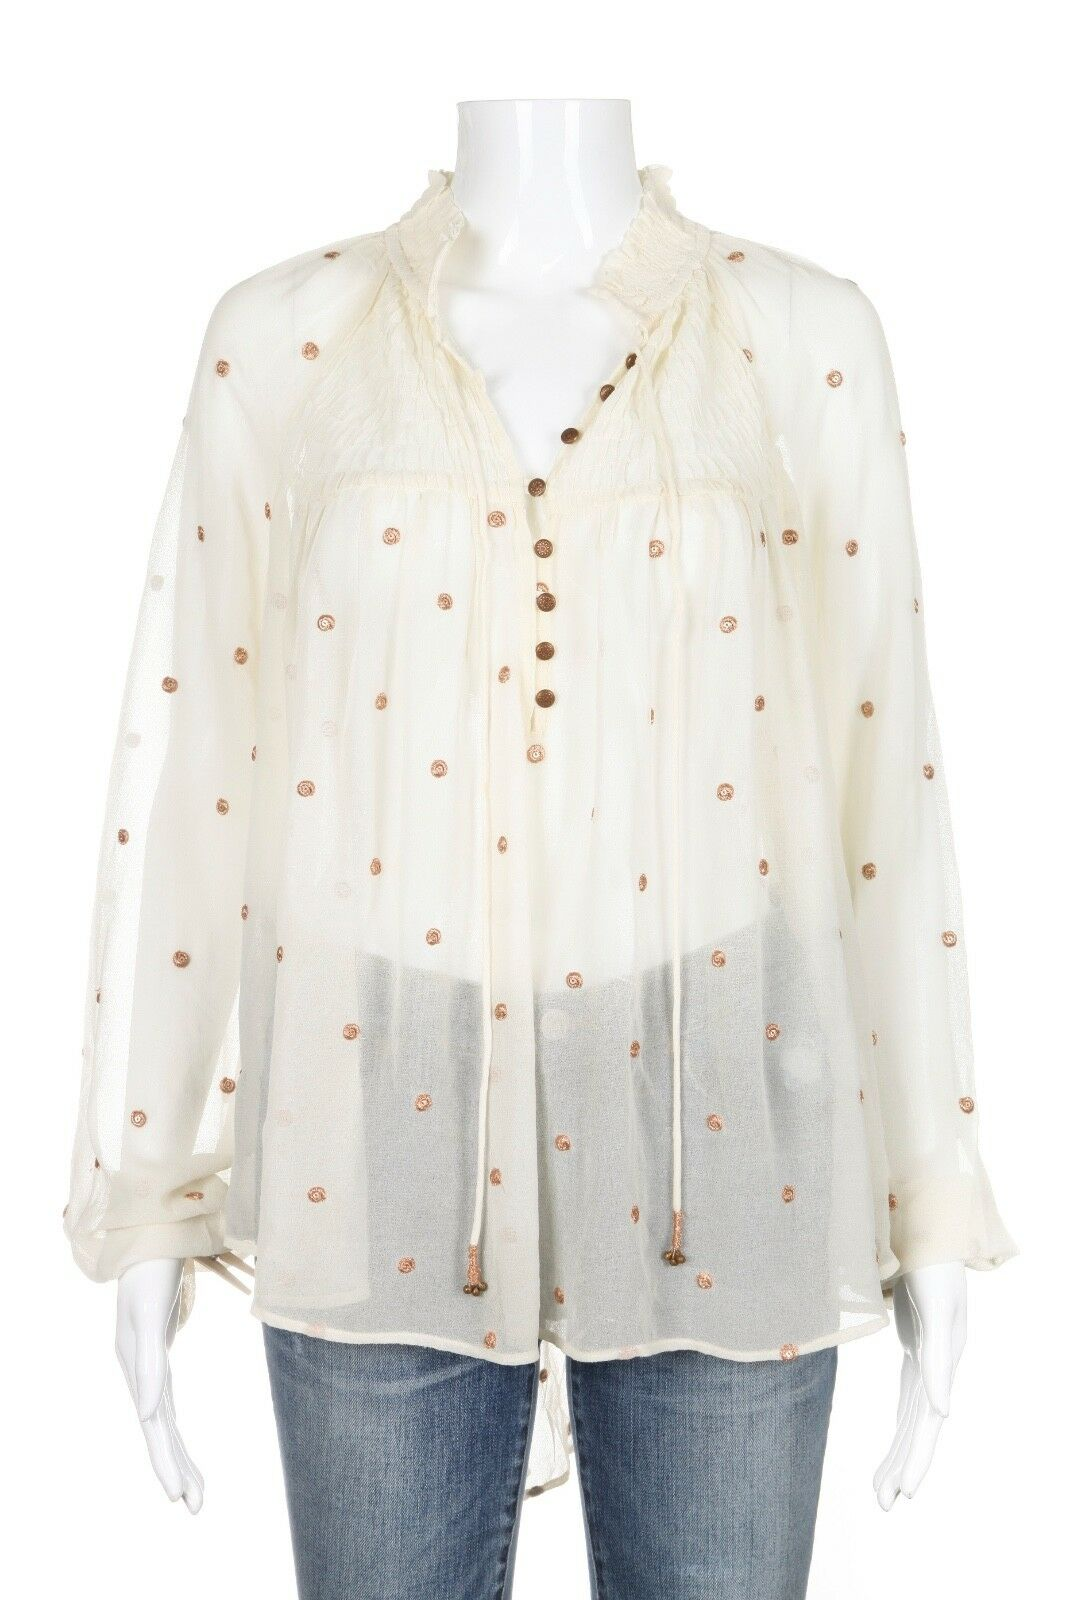 NEW FREE PEOPLE Sheer Blouse Medium Ivory Long Sleeve High Low NWT